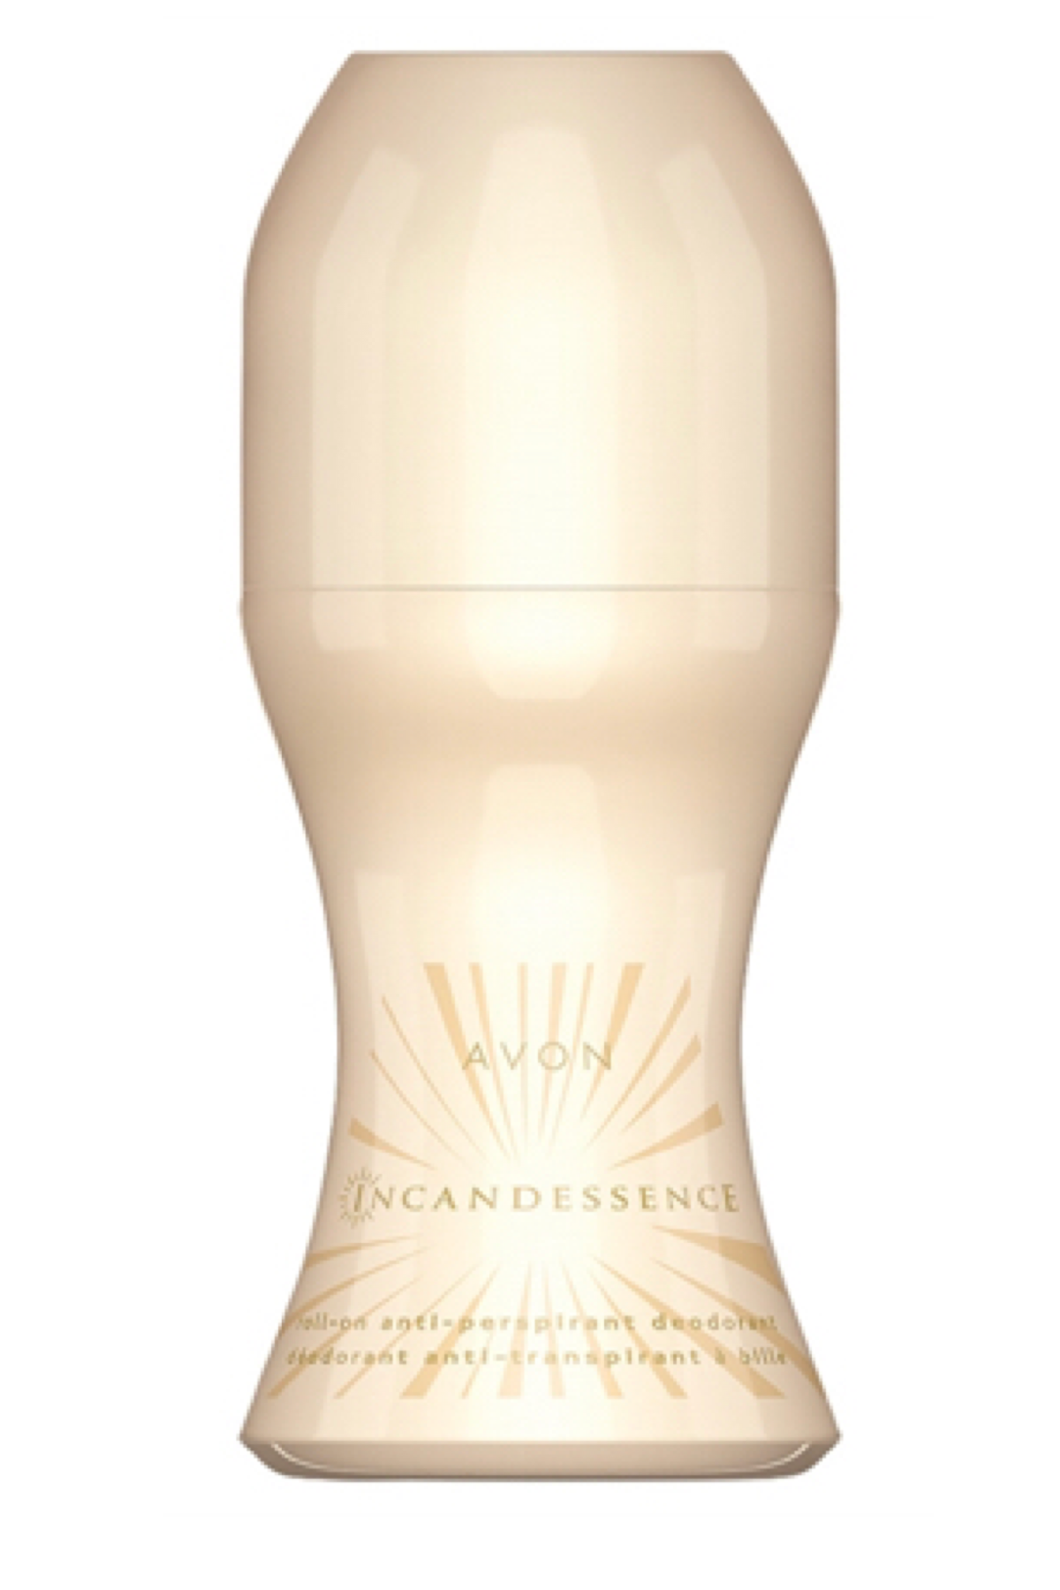 Incandessence Roll-On Anti-Perspirant Deodorant 50ml